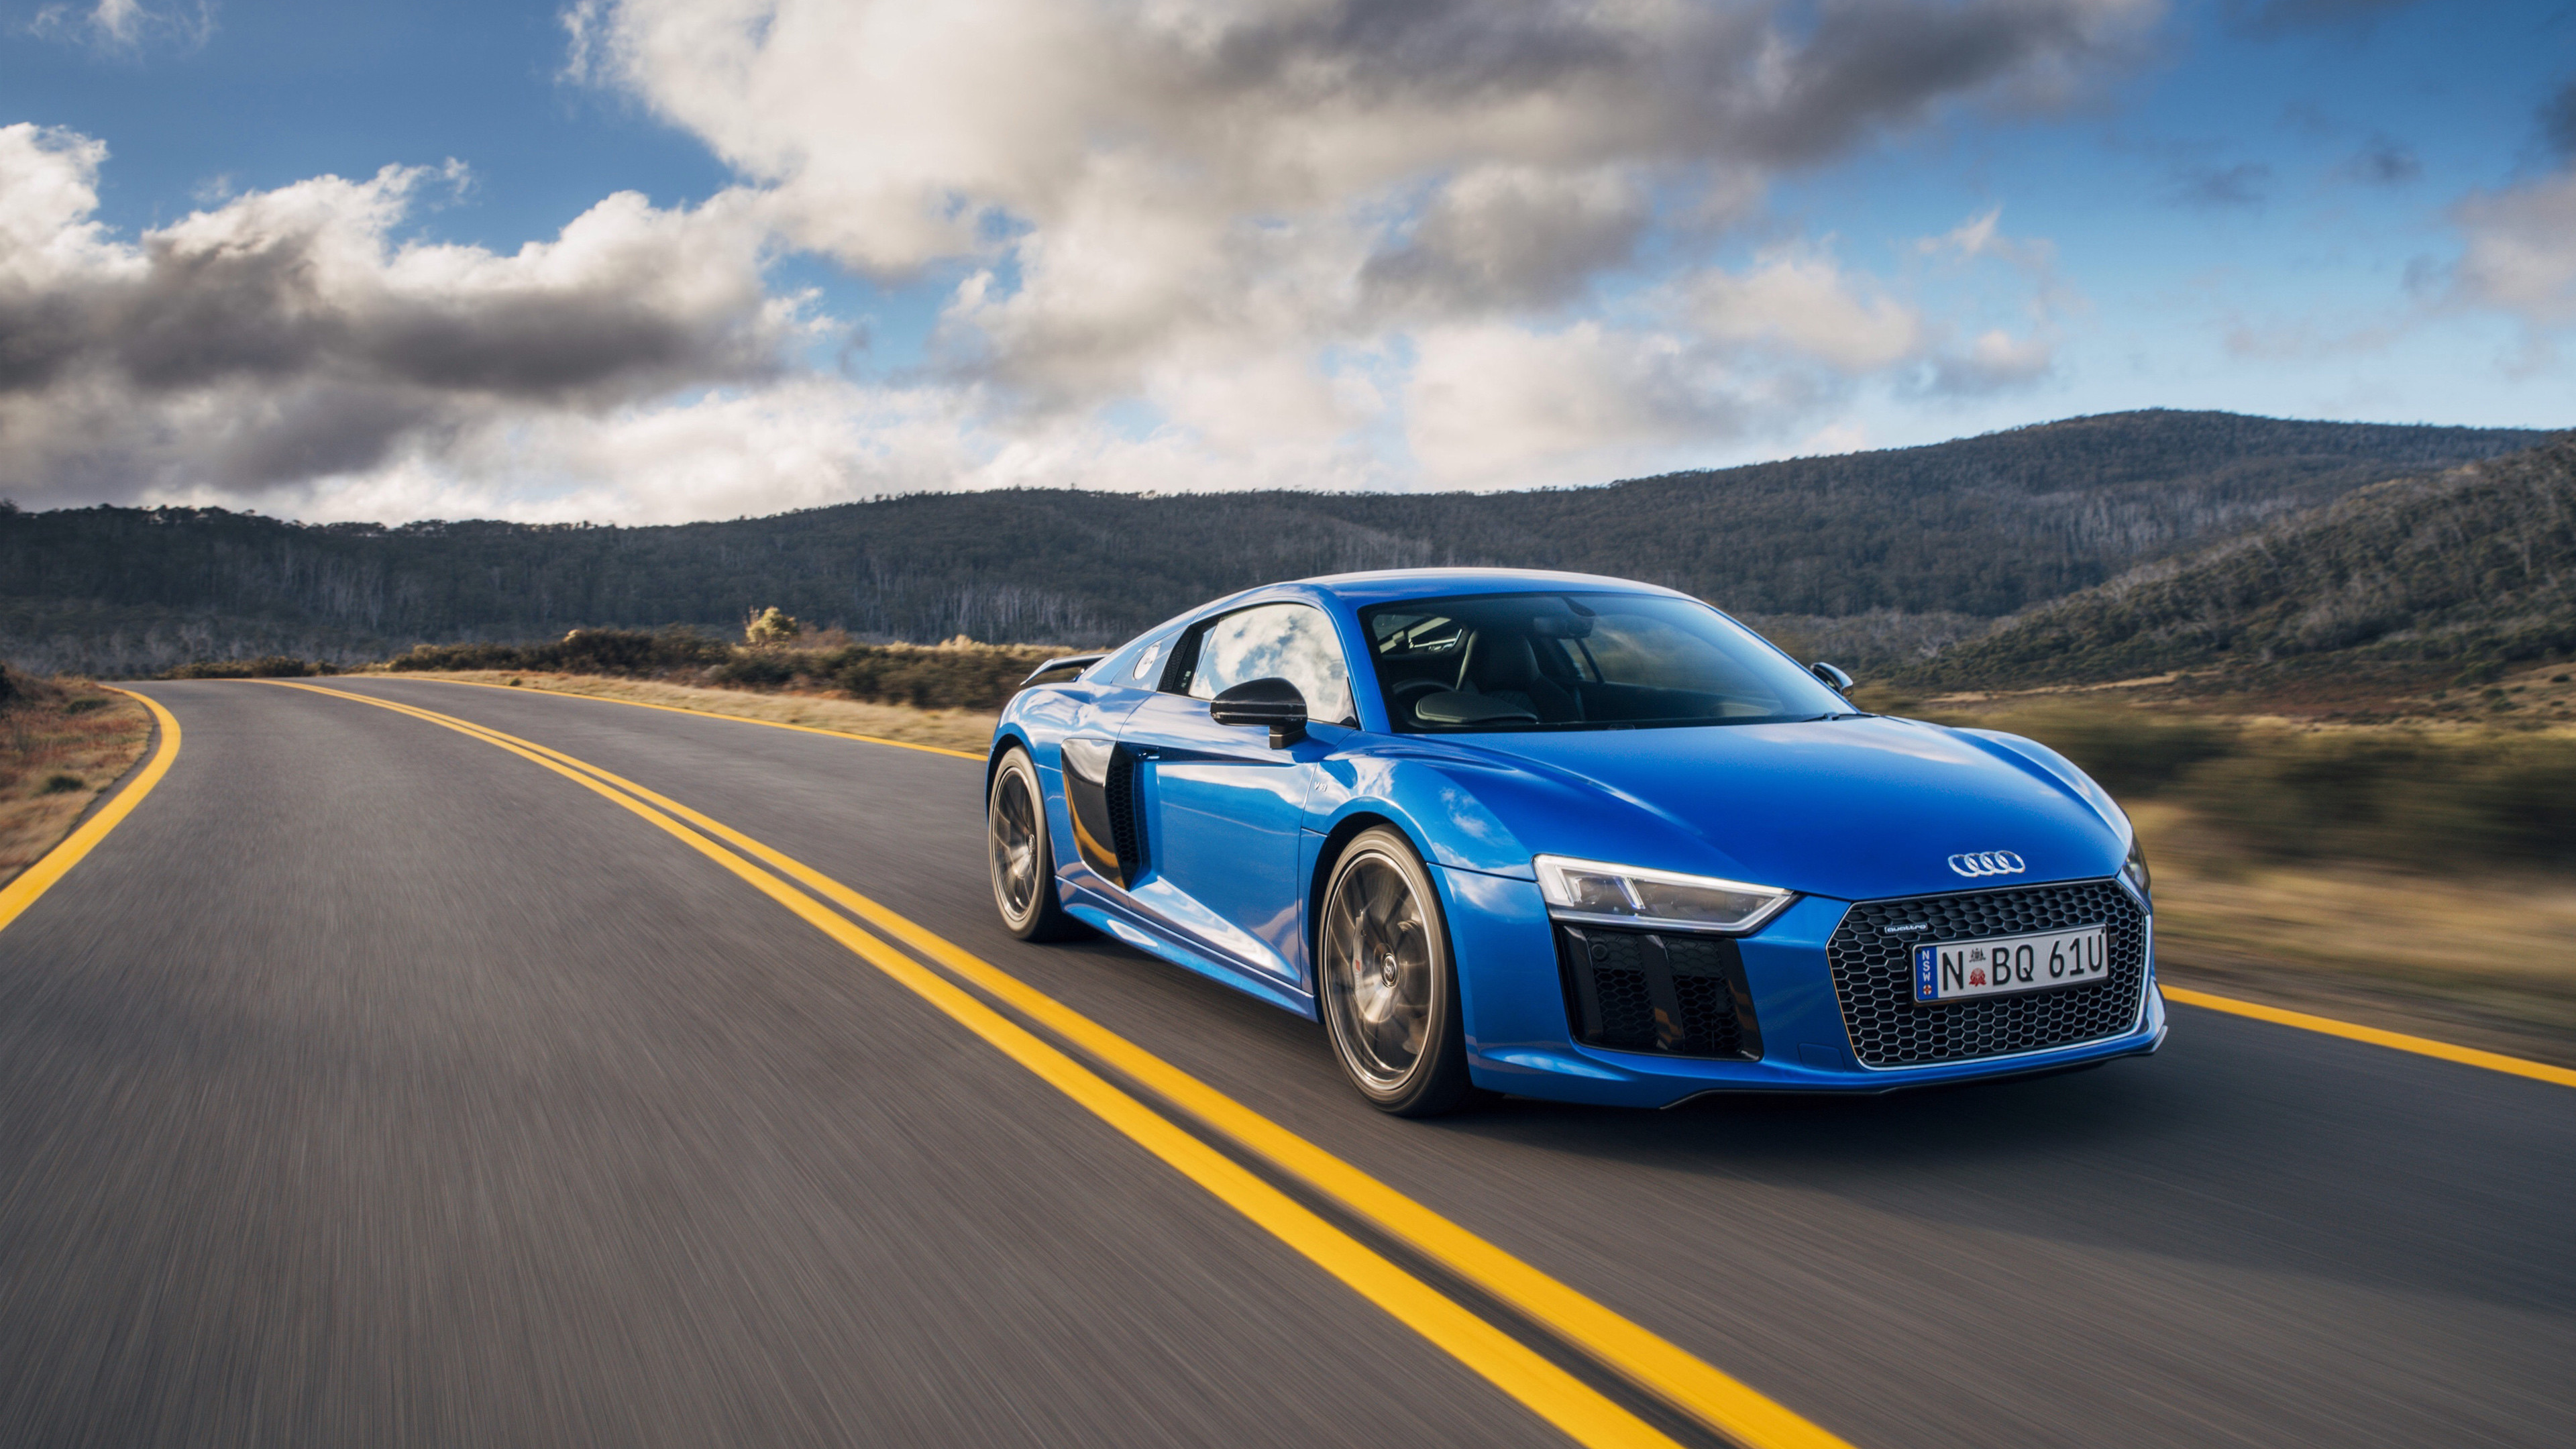 New Car Wallpaper Hd 4k On Img R3eb And Car Wallpaper Audi R8 Wallpaper 4k 3840x2160 Wallpaper Teahub Io